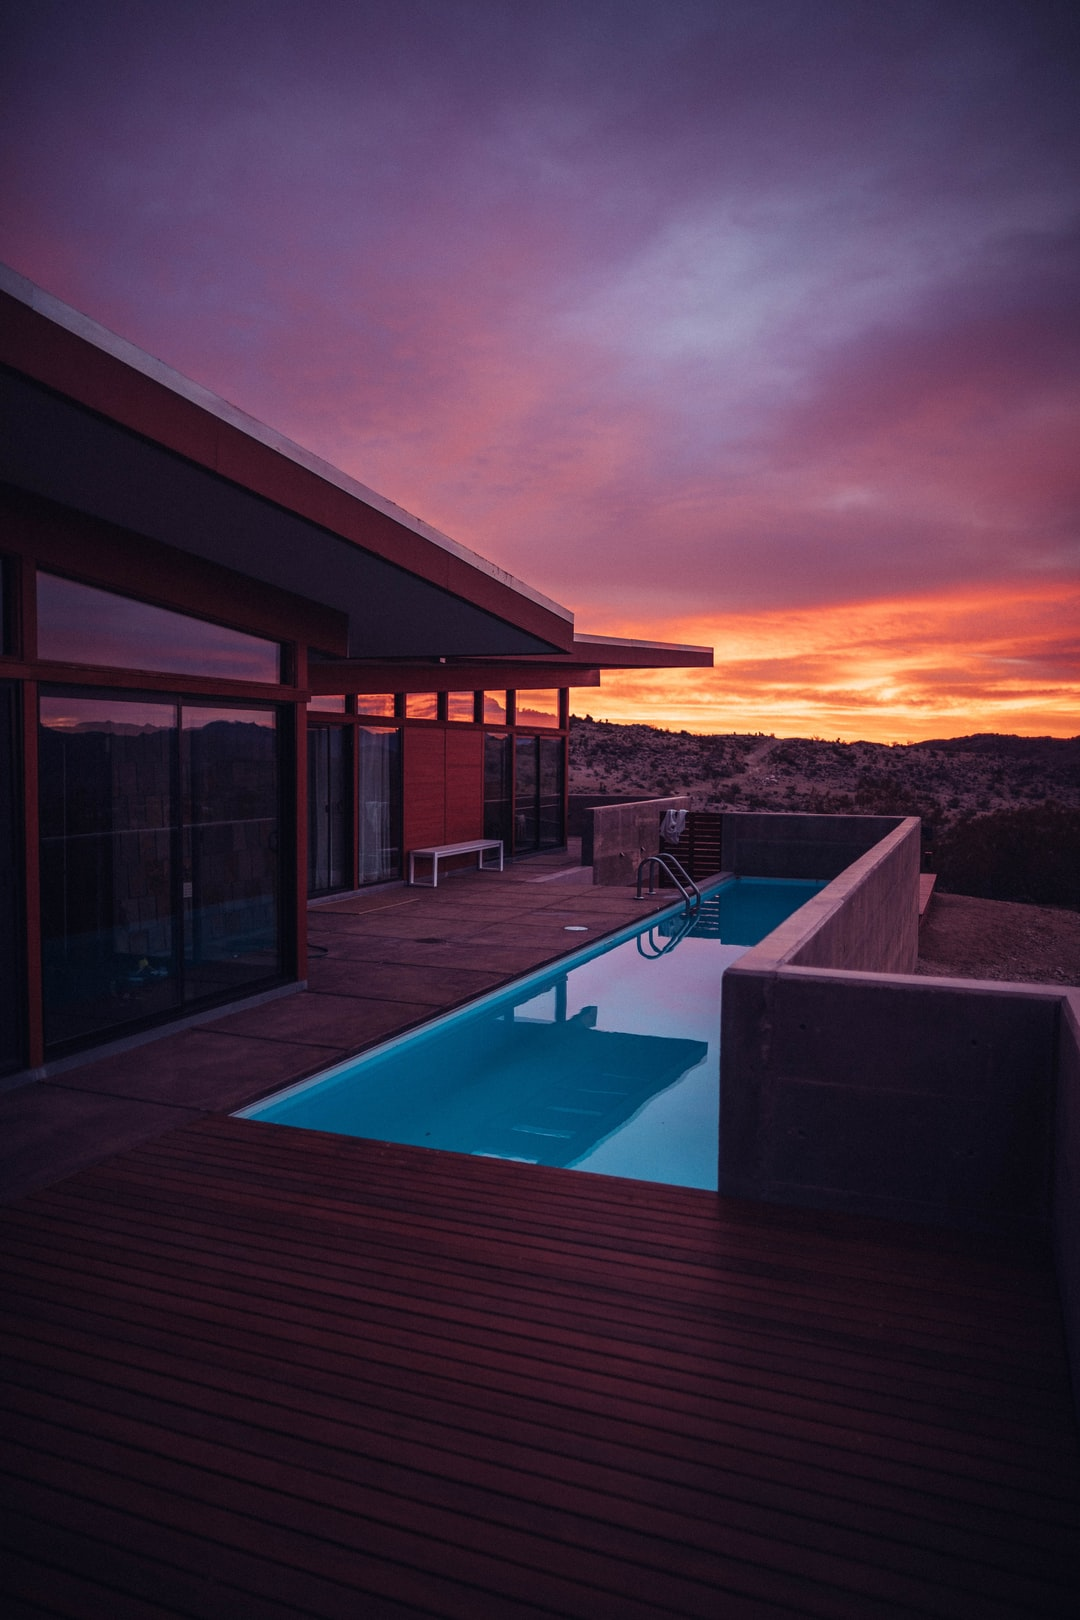 Vacation Rental Trends in the Short-Term Vacation Rental Industry